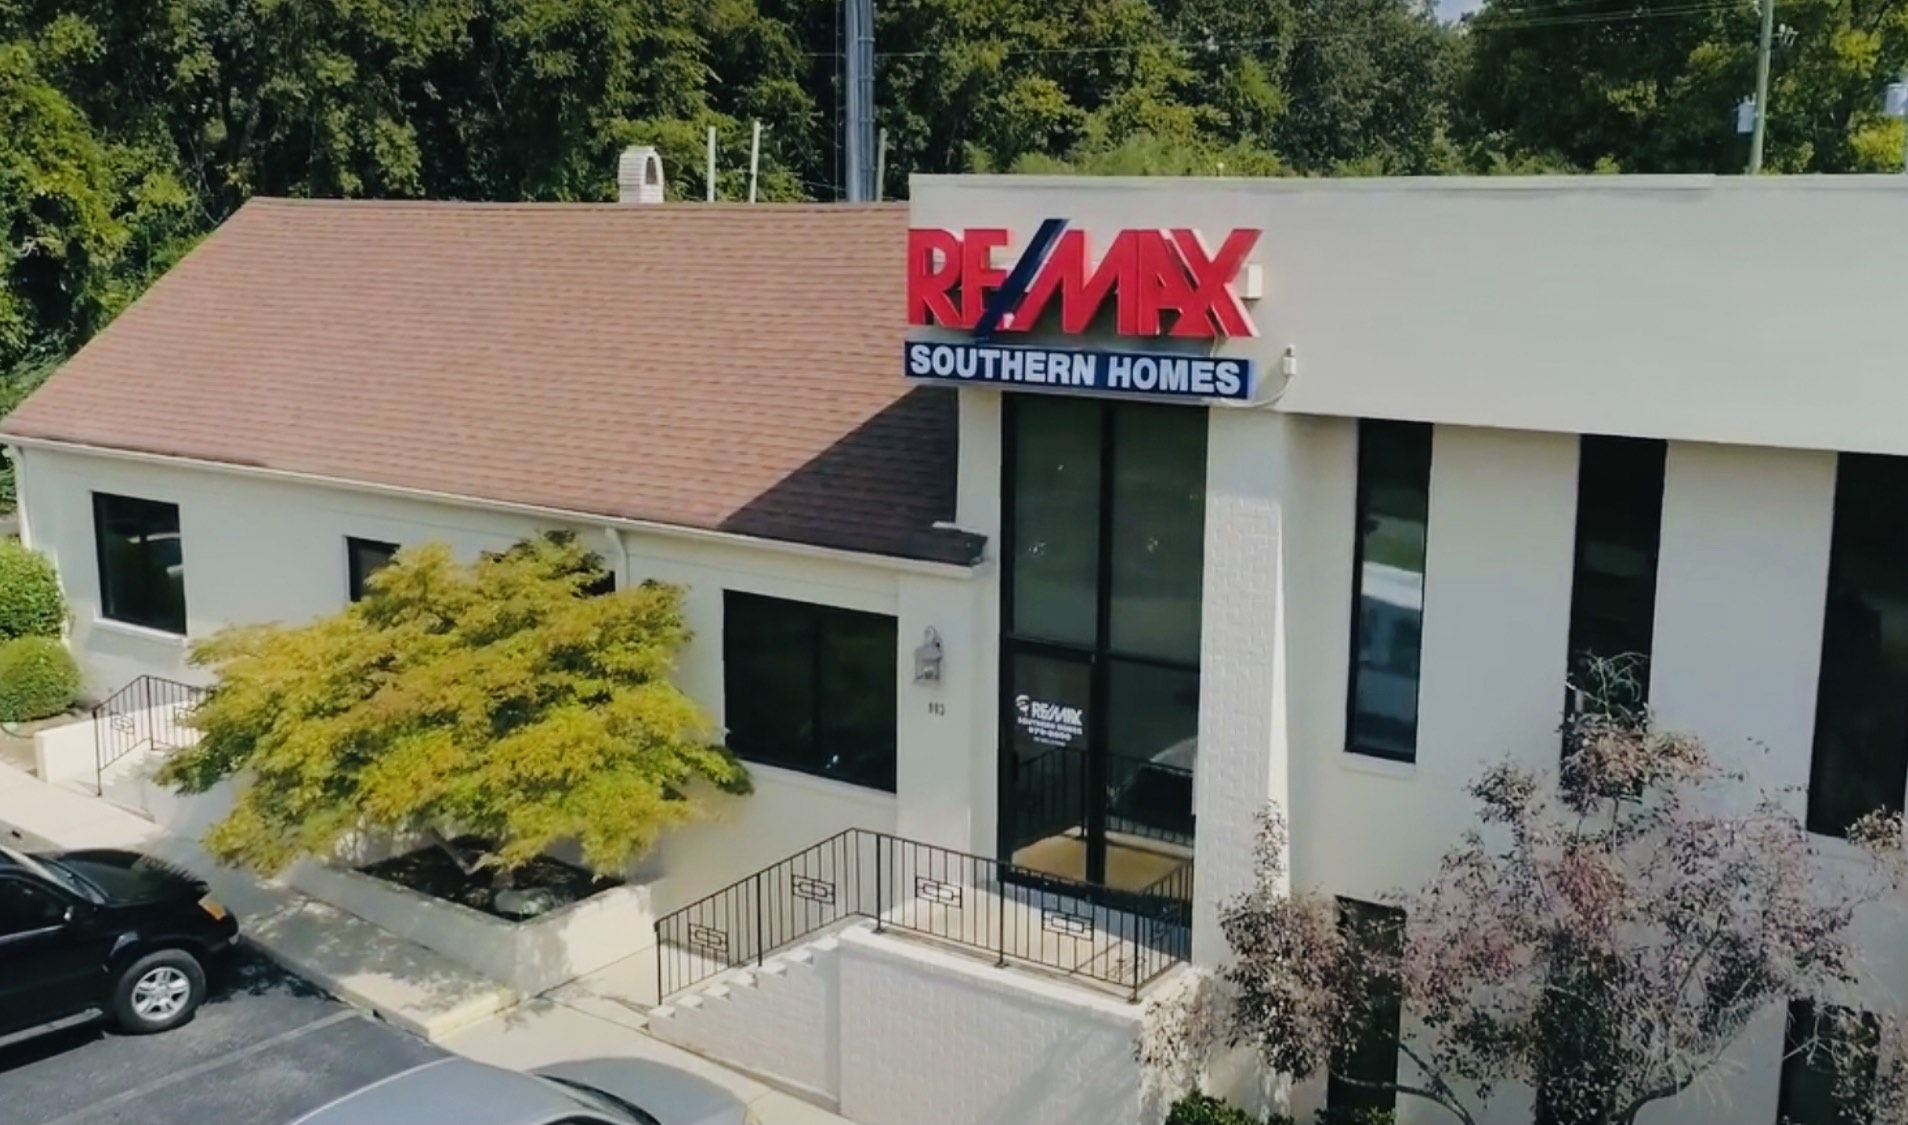 RE/MAX Southern Homes Offices